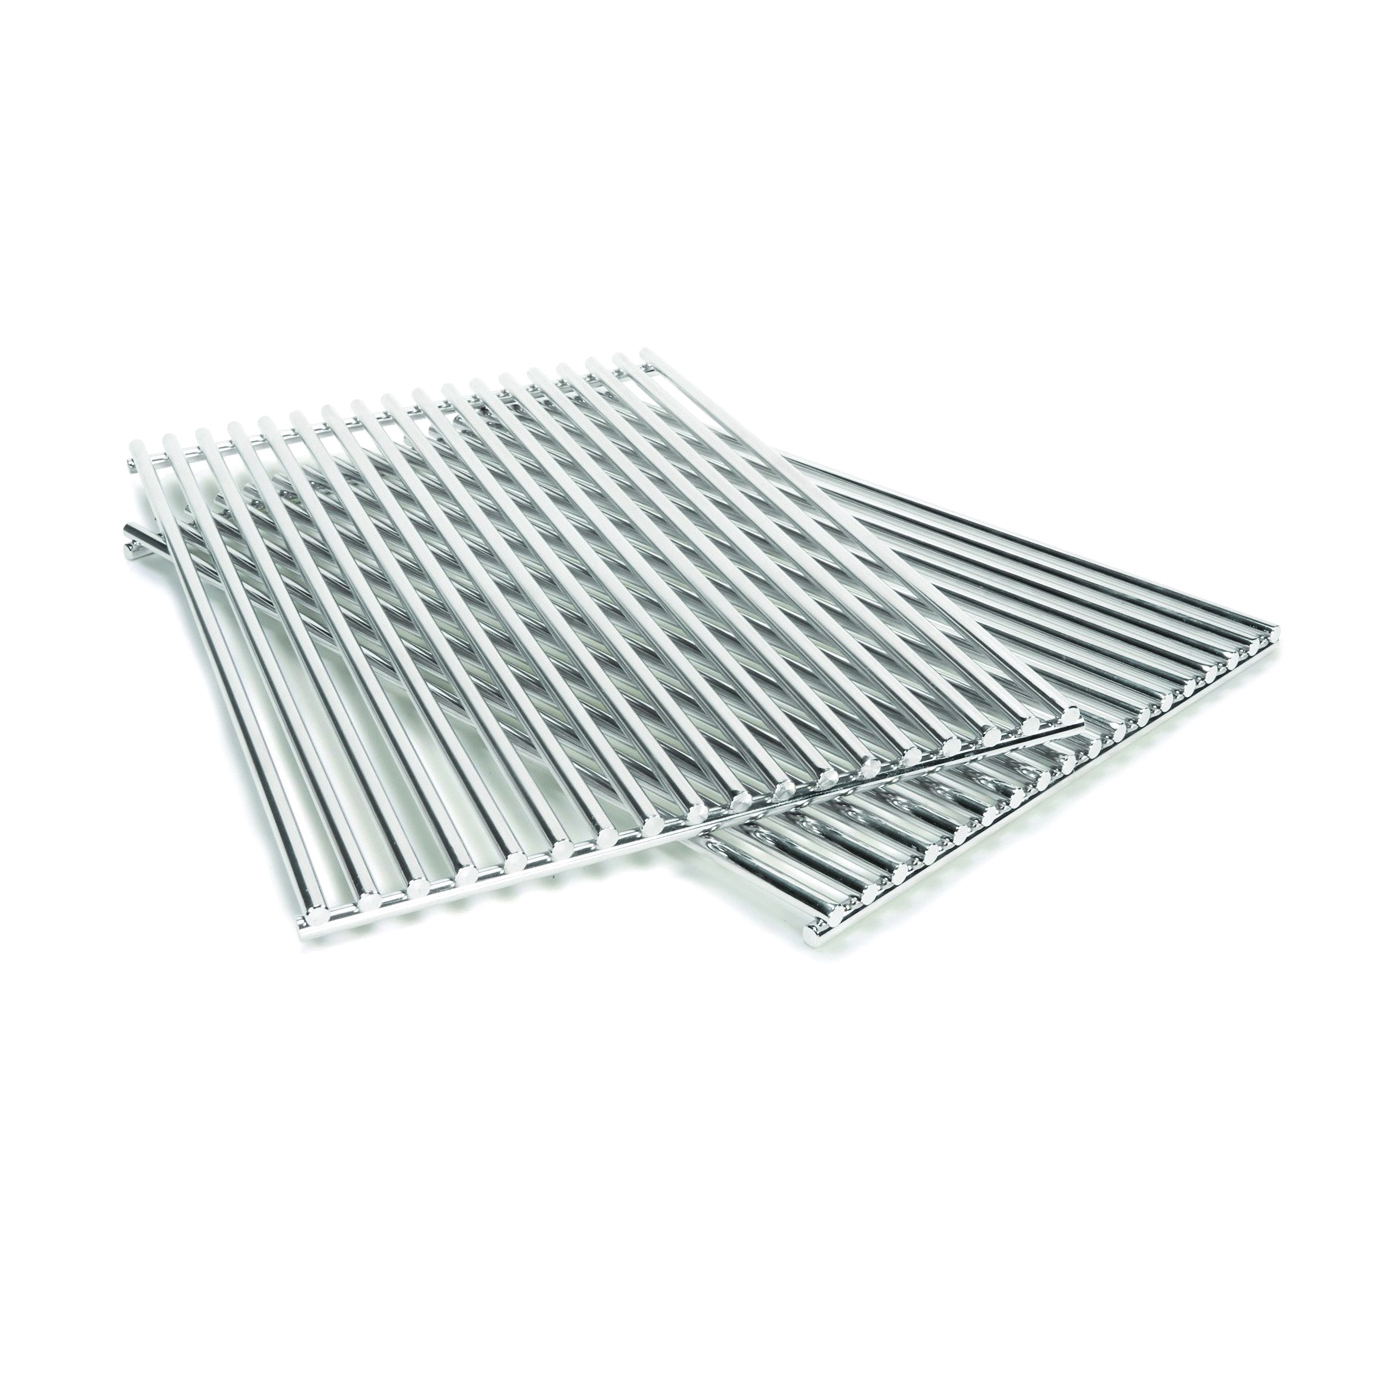 Picture of Onward 17527 Grid Grill, Stainless Steel, Silver